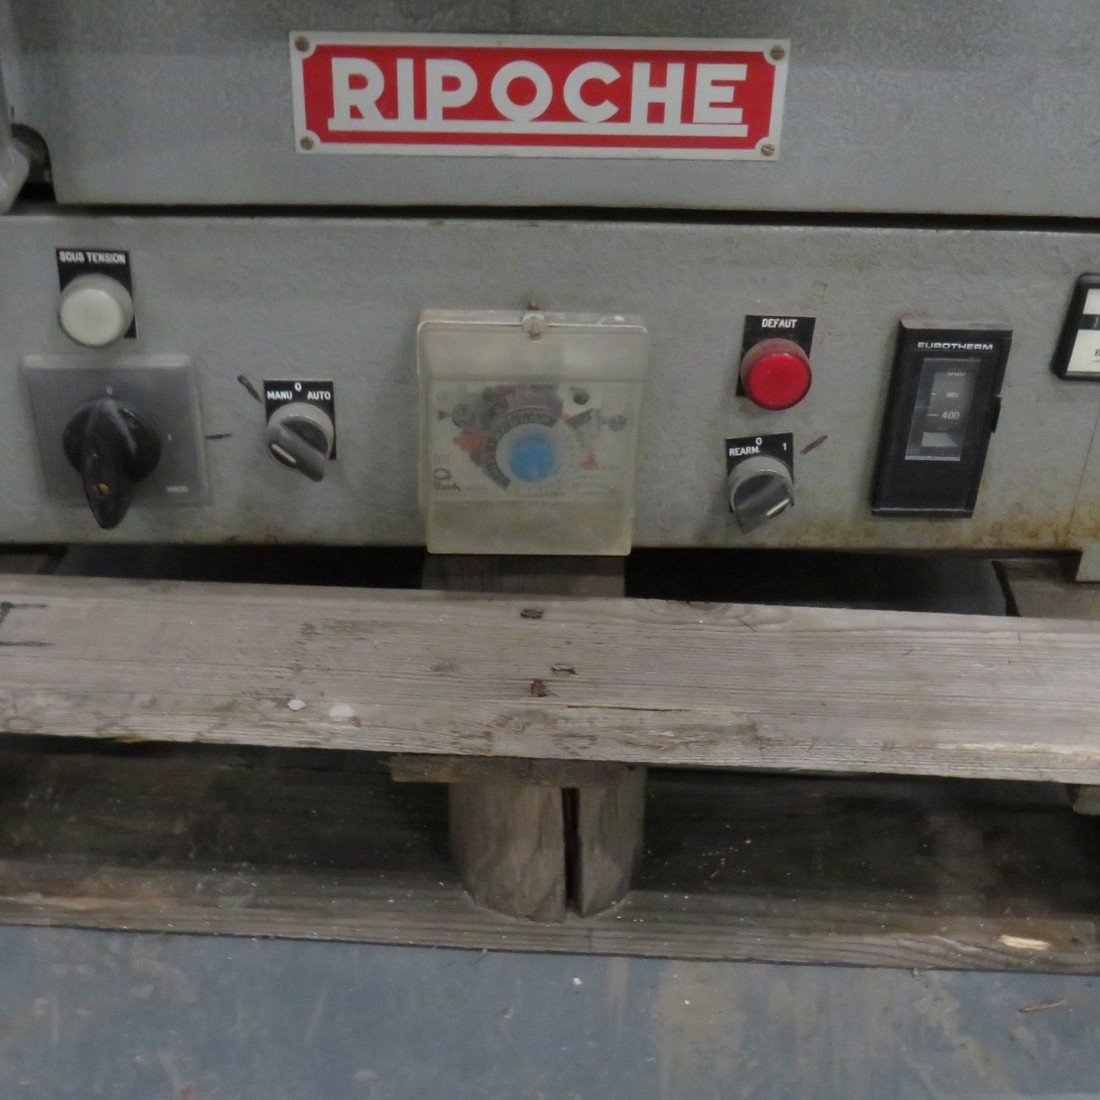 R1N731 RIPOCHE oven - NSBA28 Type - 1200°C